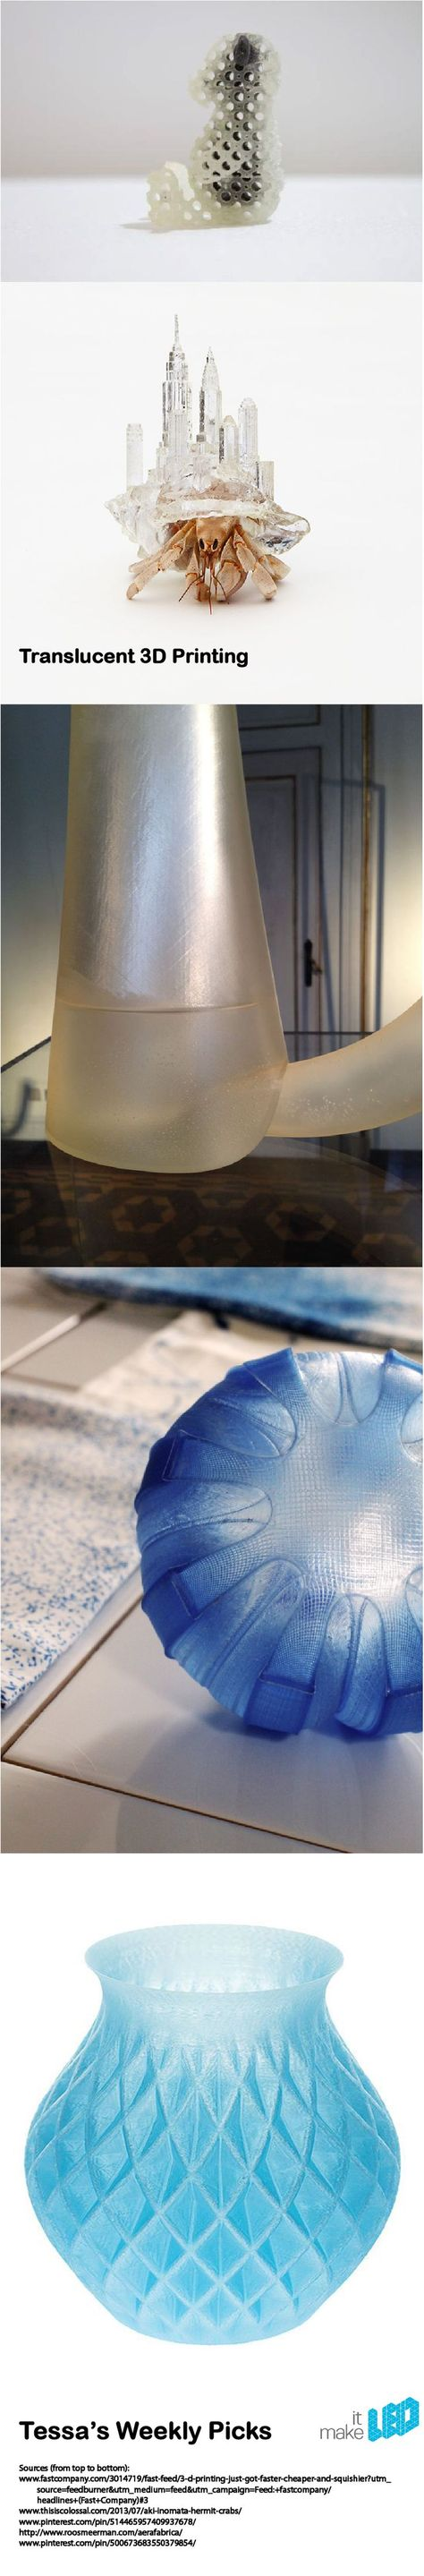 A pick at the intersection of #3Dprinting, #architecture